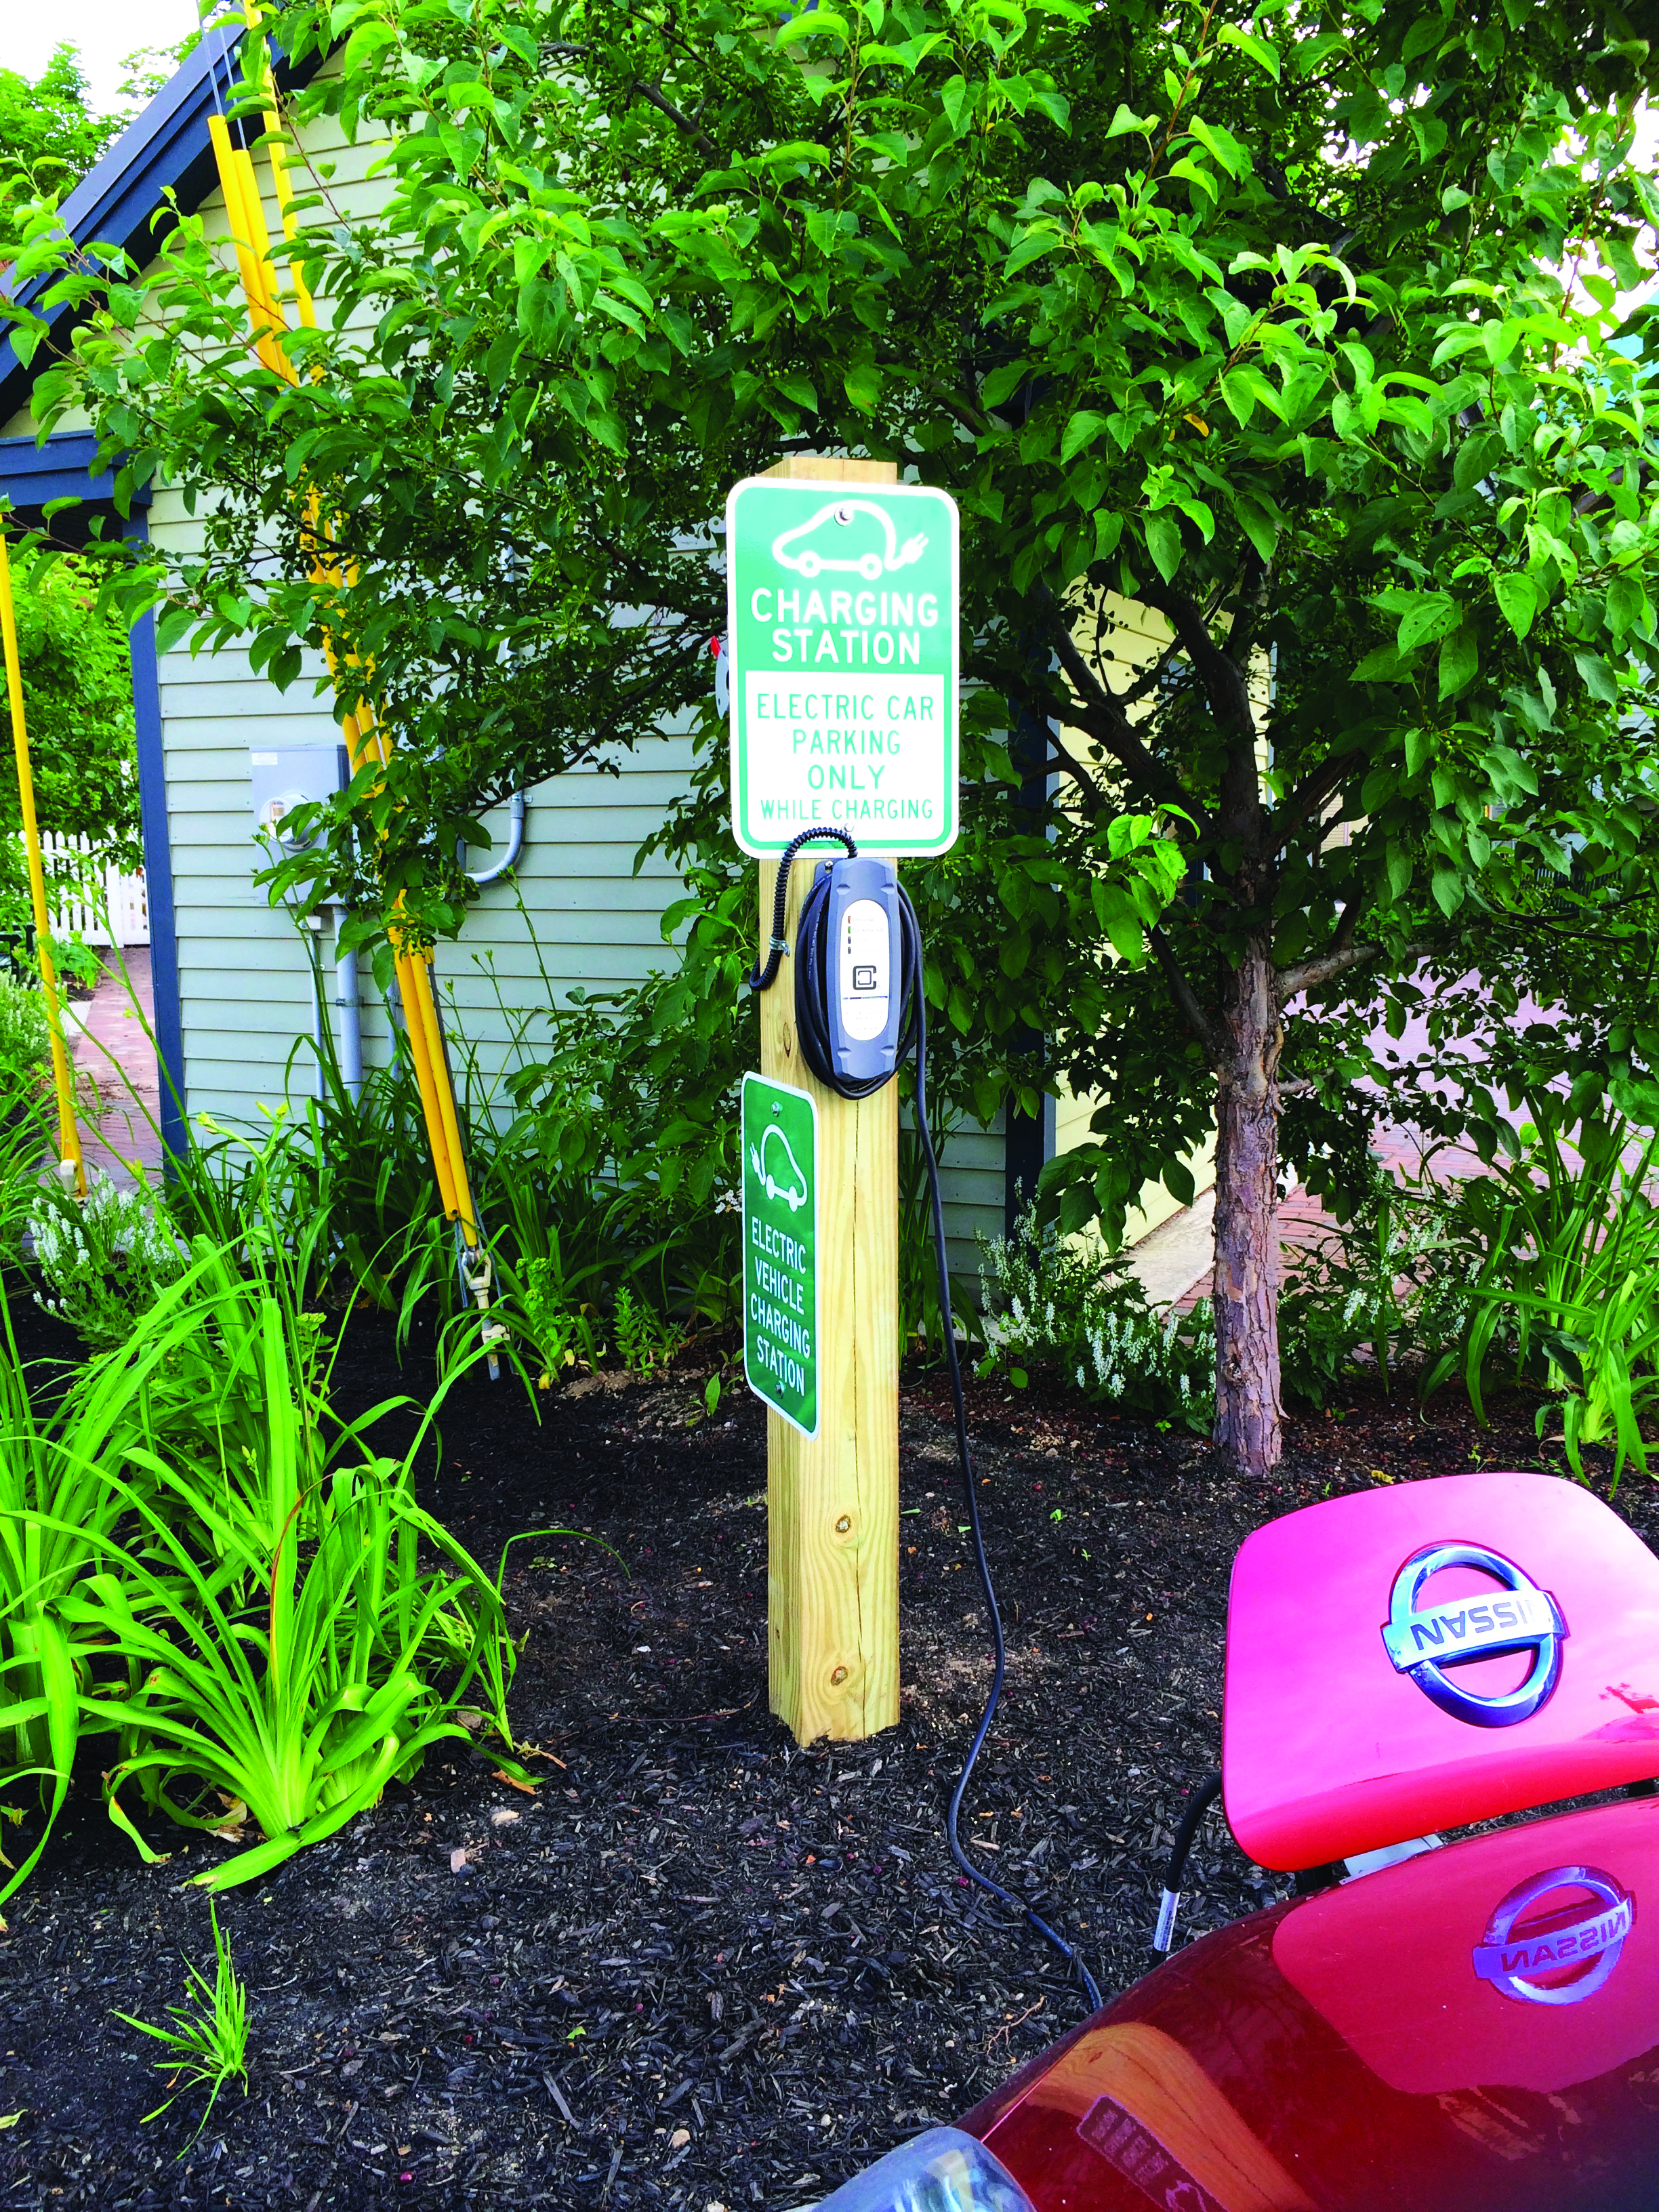 A free public charging station for electric vehicles has been available since the summer of 2014 on Deering Street in Norway, ME.